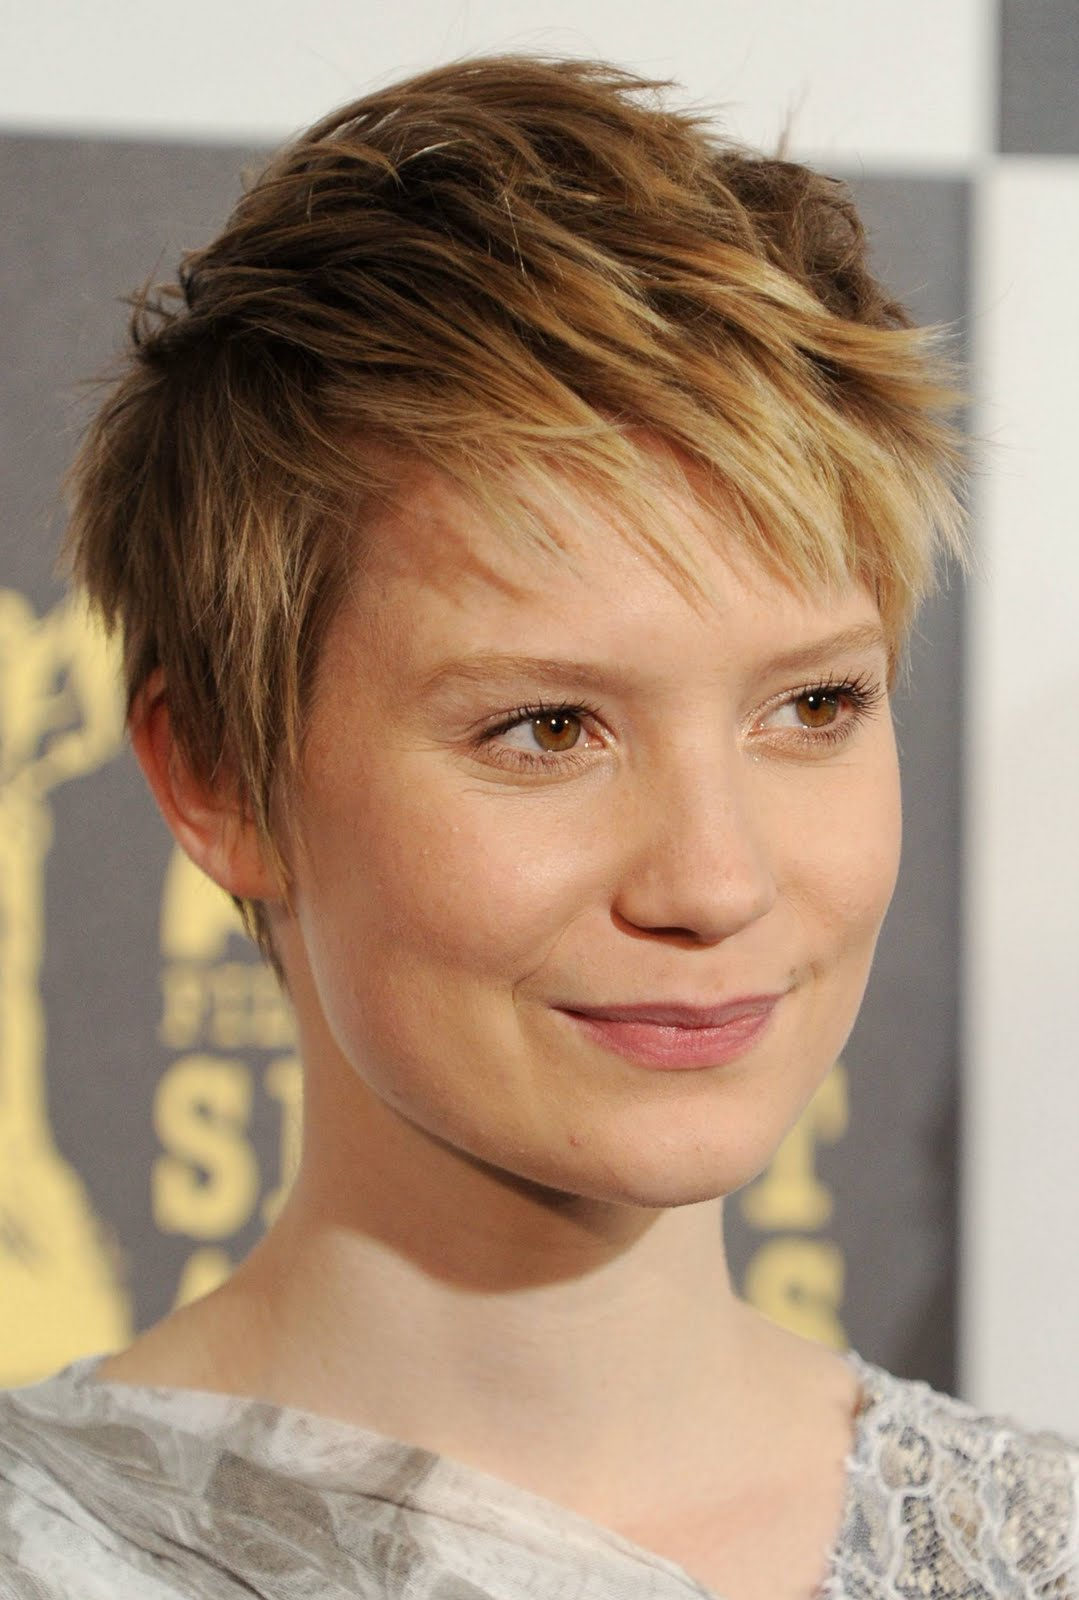 Celebrity Favorite Short Pixie Hairstyles Of 2011 title=